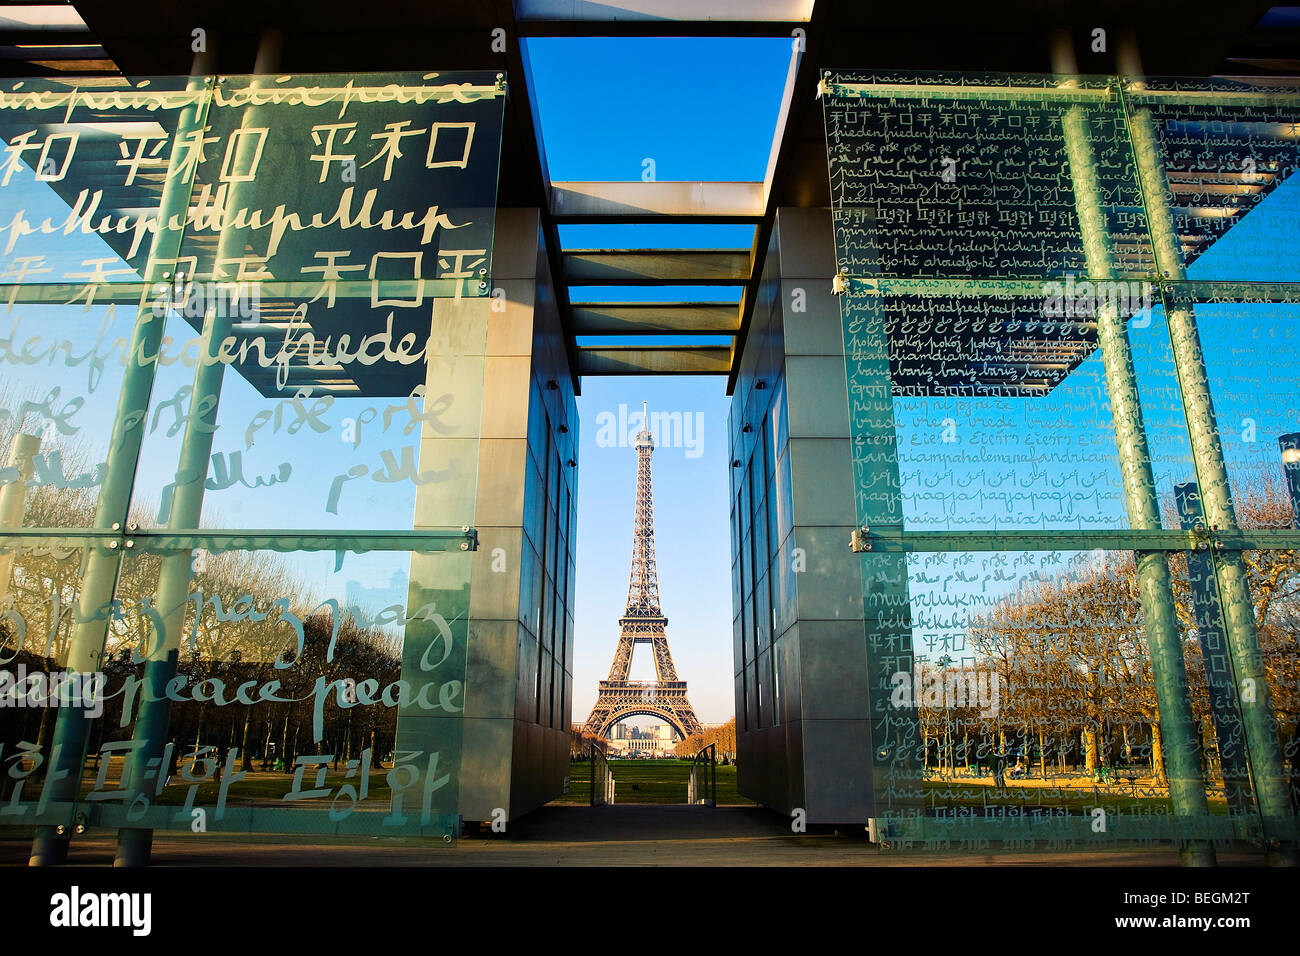 PEACE WALL AND EIFFEL TOWER, PARIS - Stock Image